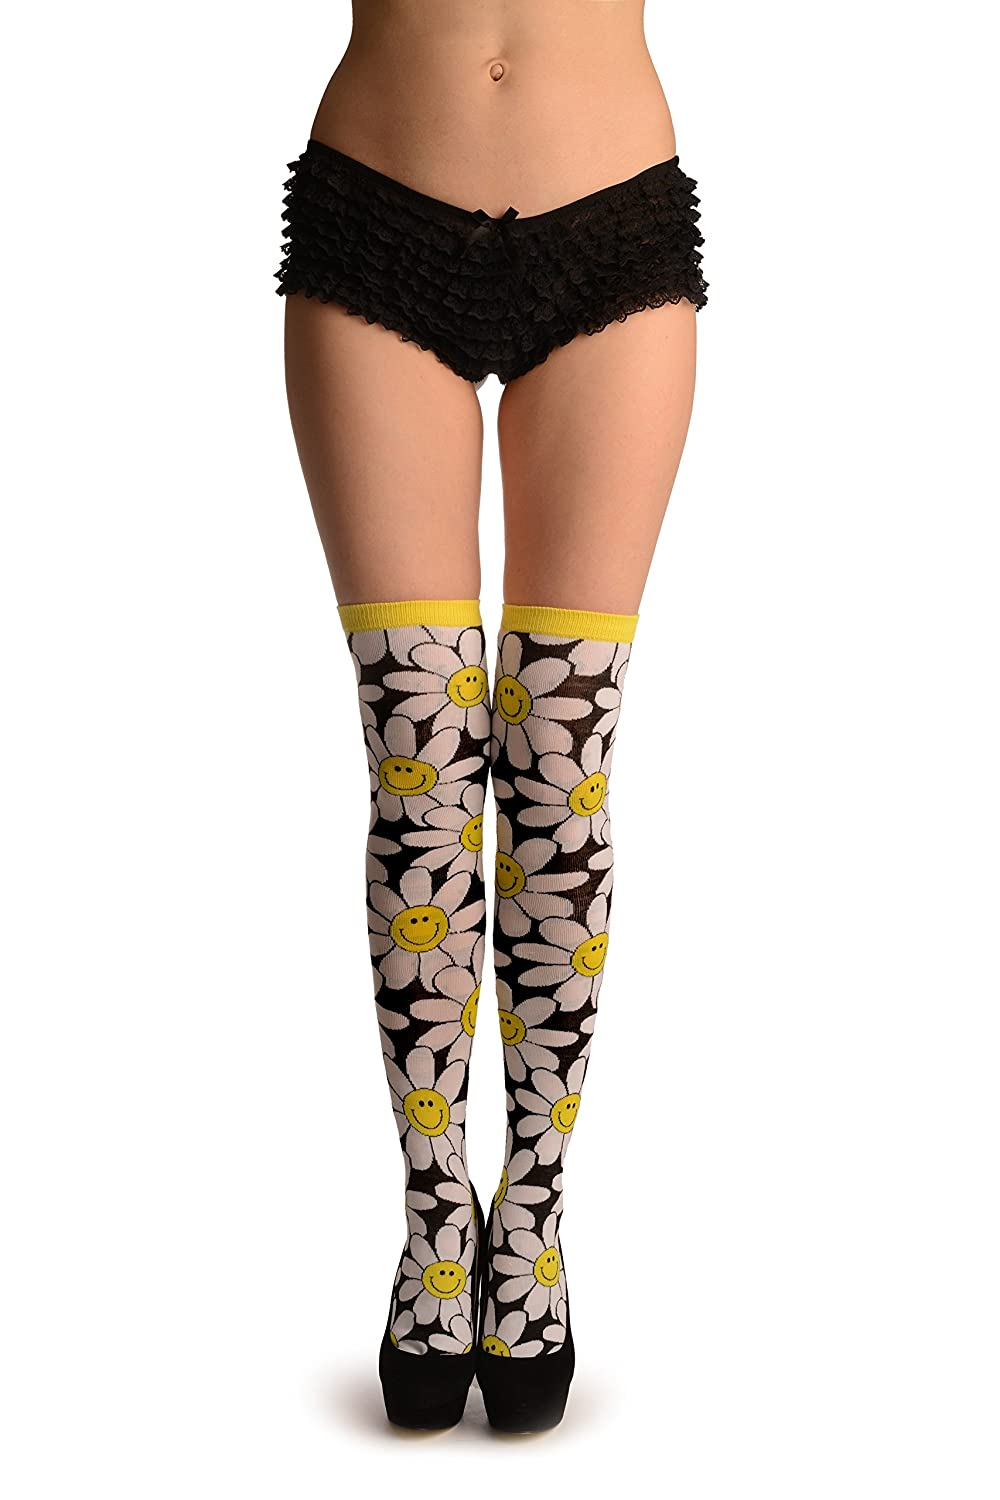 6d8df6441 White Woven Daisy Flowers On Black - White Floral Over The Knee Socks   Amazon.co.uk  Clothing